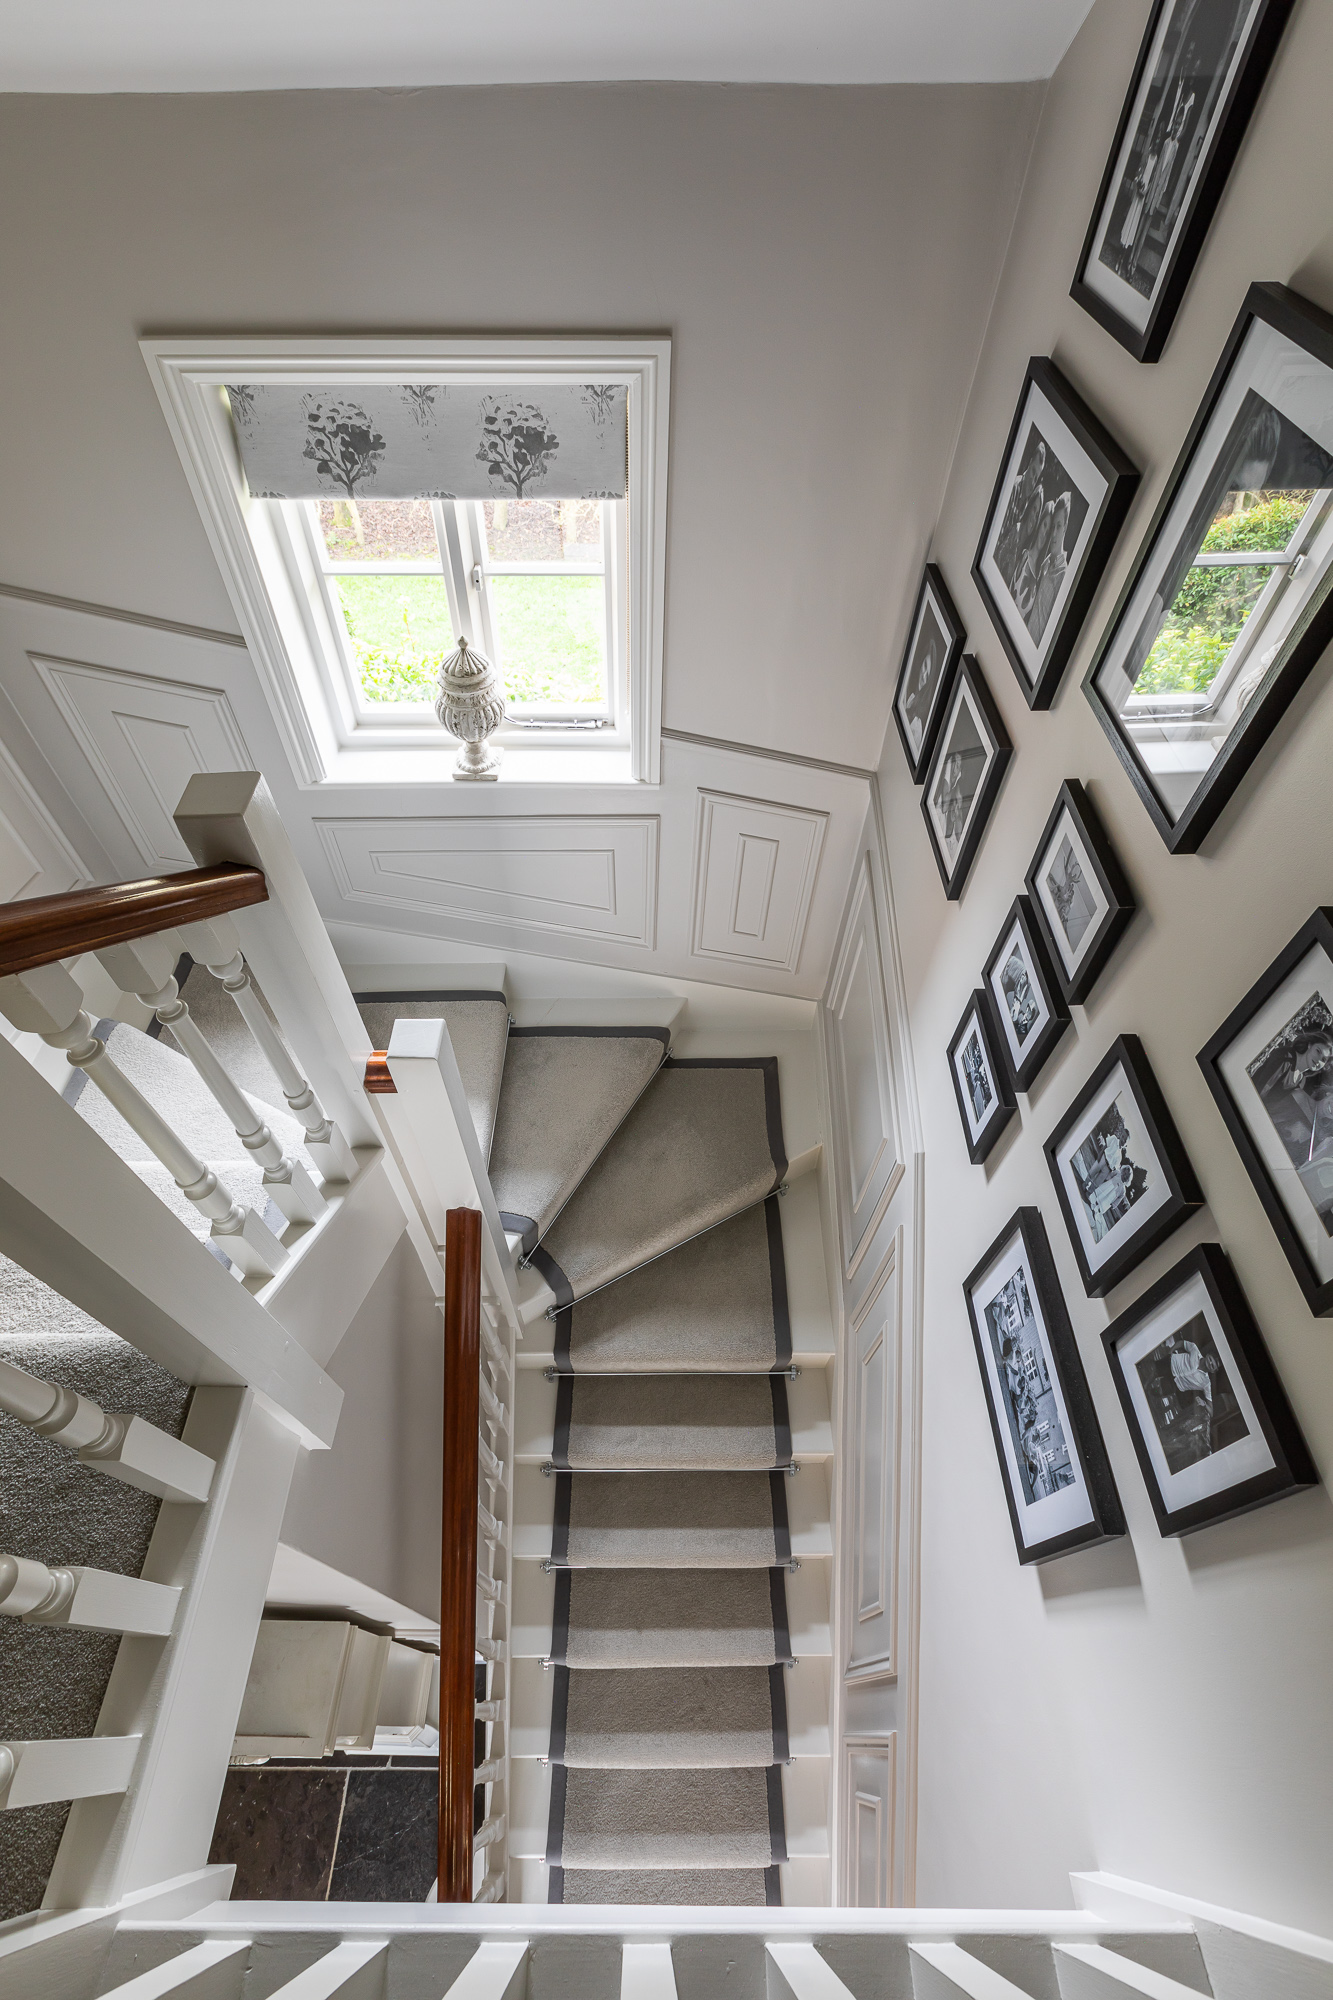 jonathan bond, interior photographer, landing view of stairs & bannisters, harlow